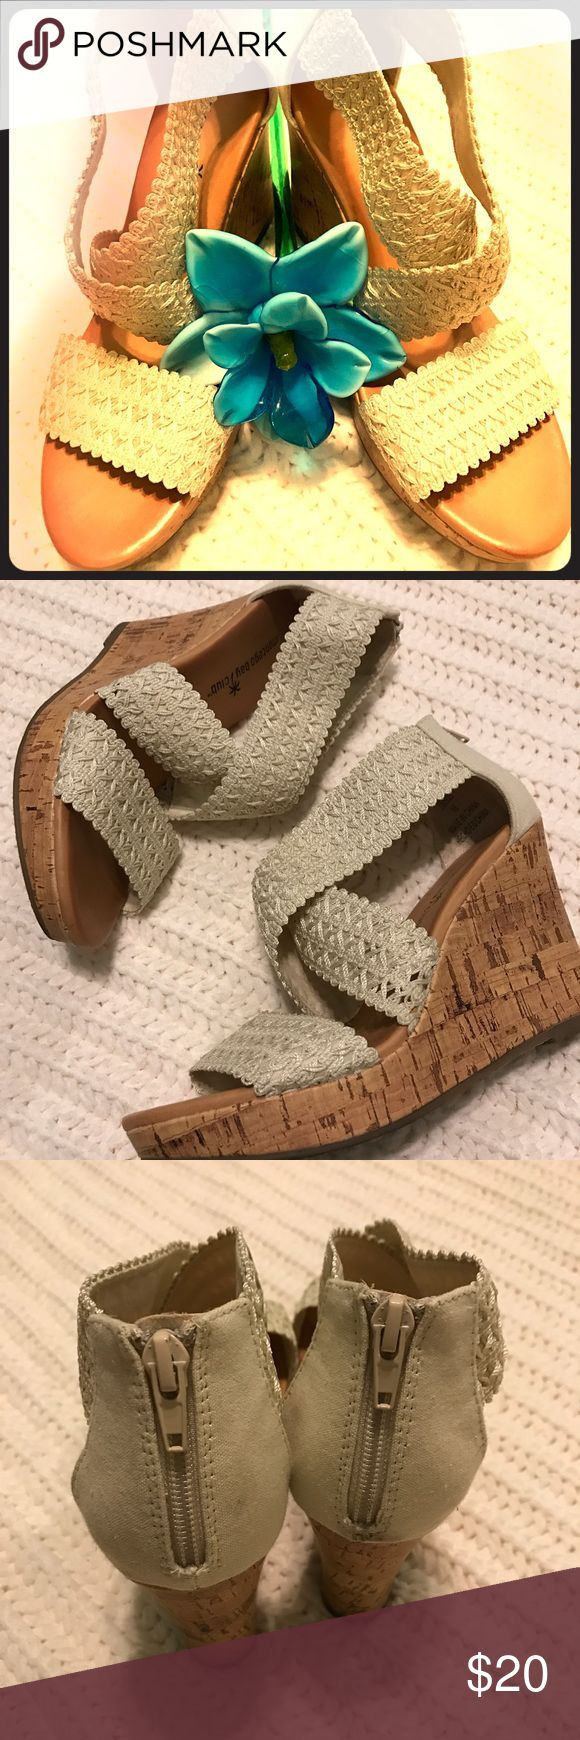 ☀️ Strappy wedge sandals ☀️ Just in time for spring/summer weather! ☀️🙌🏻 cream colored straps that are stretchy and make all day wear a breeze! Gently used and in great condition! Neutral color makes matching easy! Size 7 Shoes Wedges